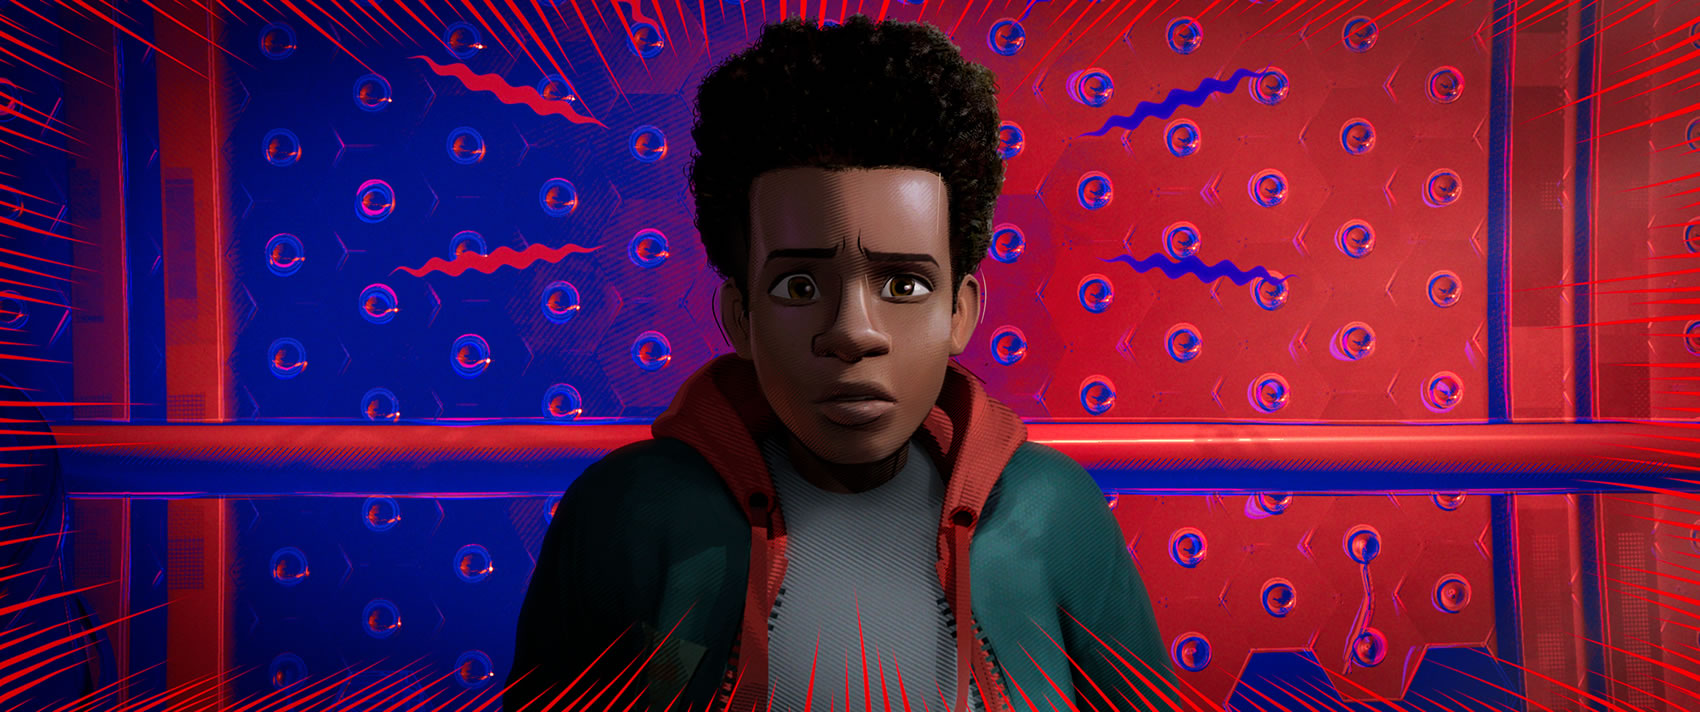 Spider-Man™: Into the Spider-Verse ©2018 Columbia Pictures Industries, Inc. All Rights Reserved. MARVEL and all related character names: © & ™ 2018 MARVEL